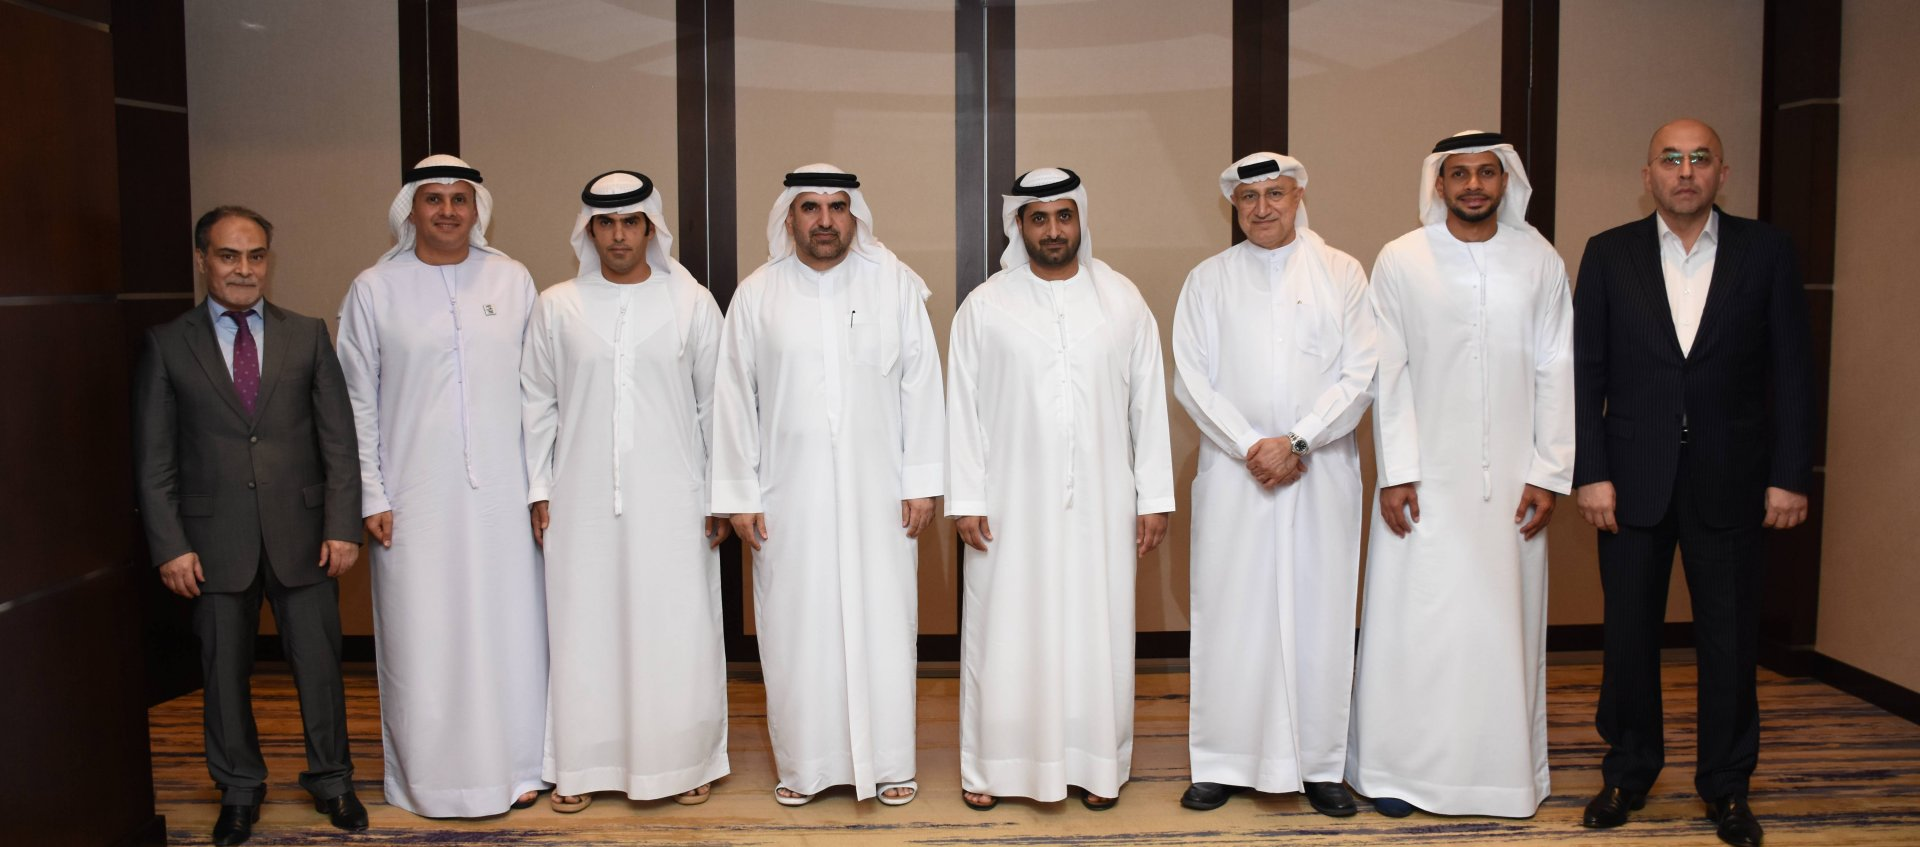 Al Falah University Board of Trustees Held its First Meeting for the Academic Year 2019-2020 Headed by Sheikh Juma Bin Maktoum Al Maktoum